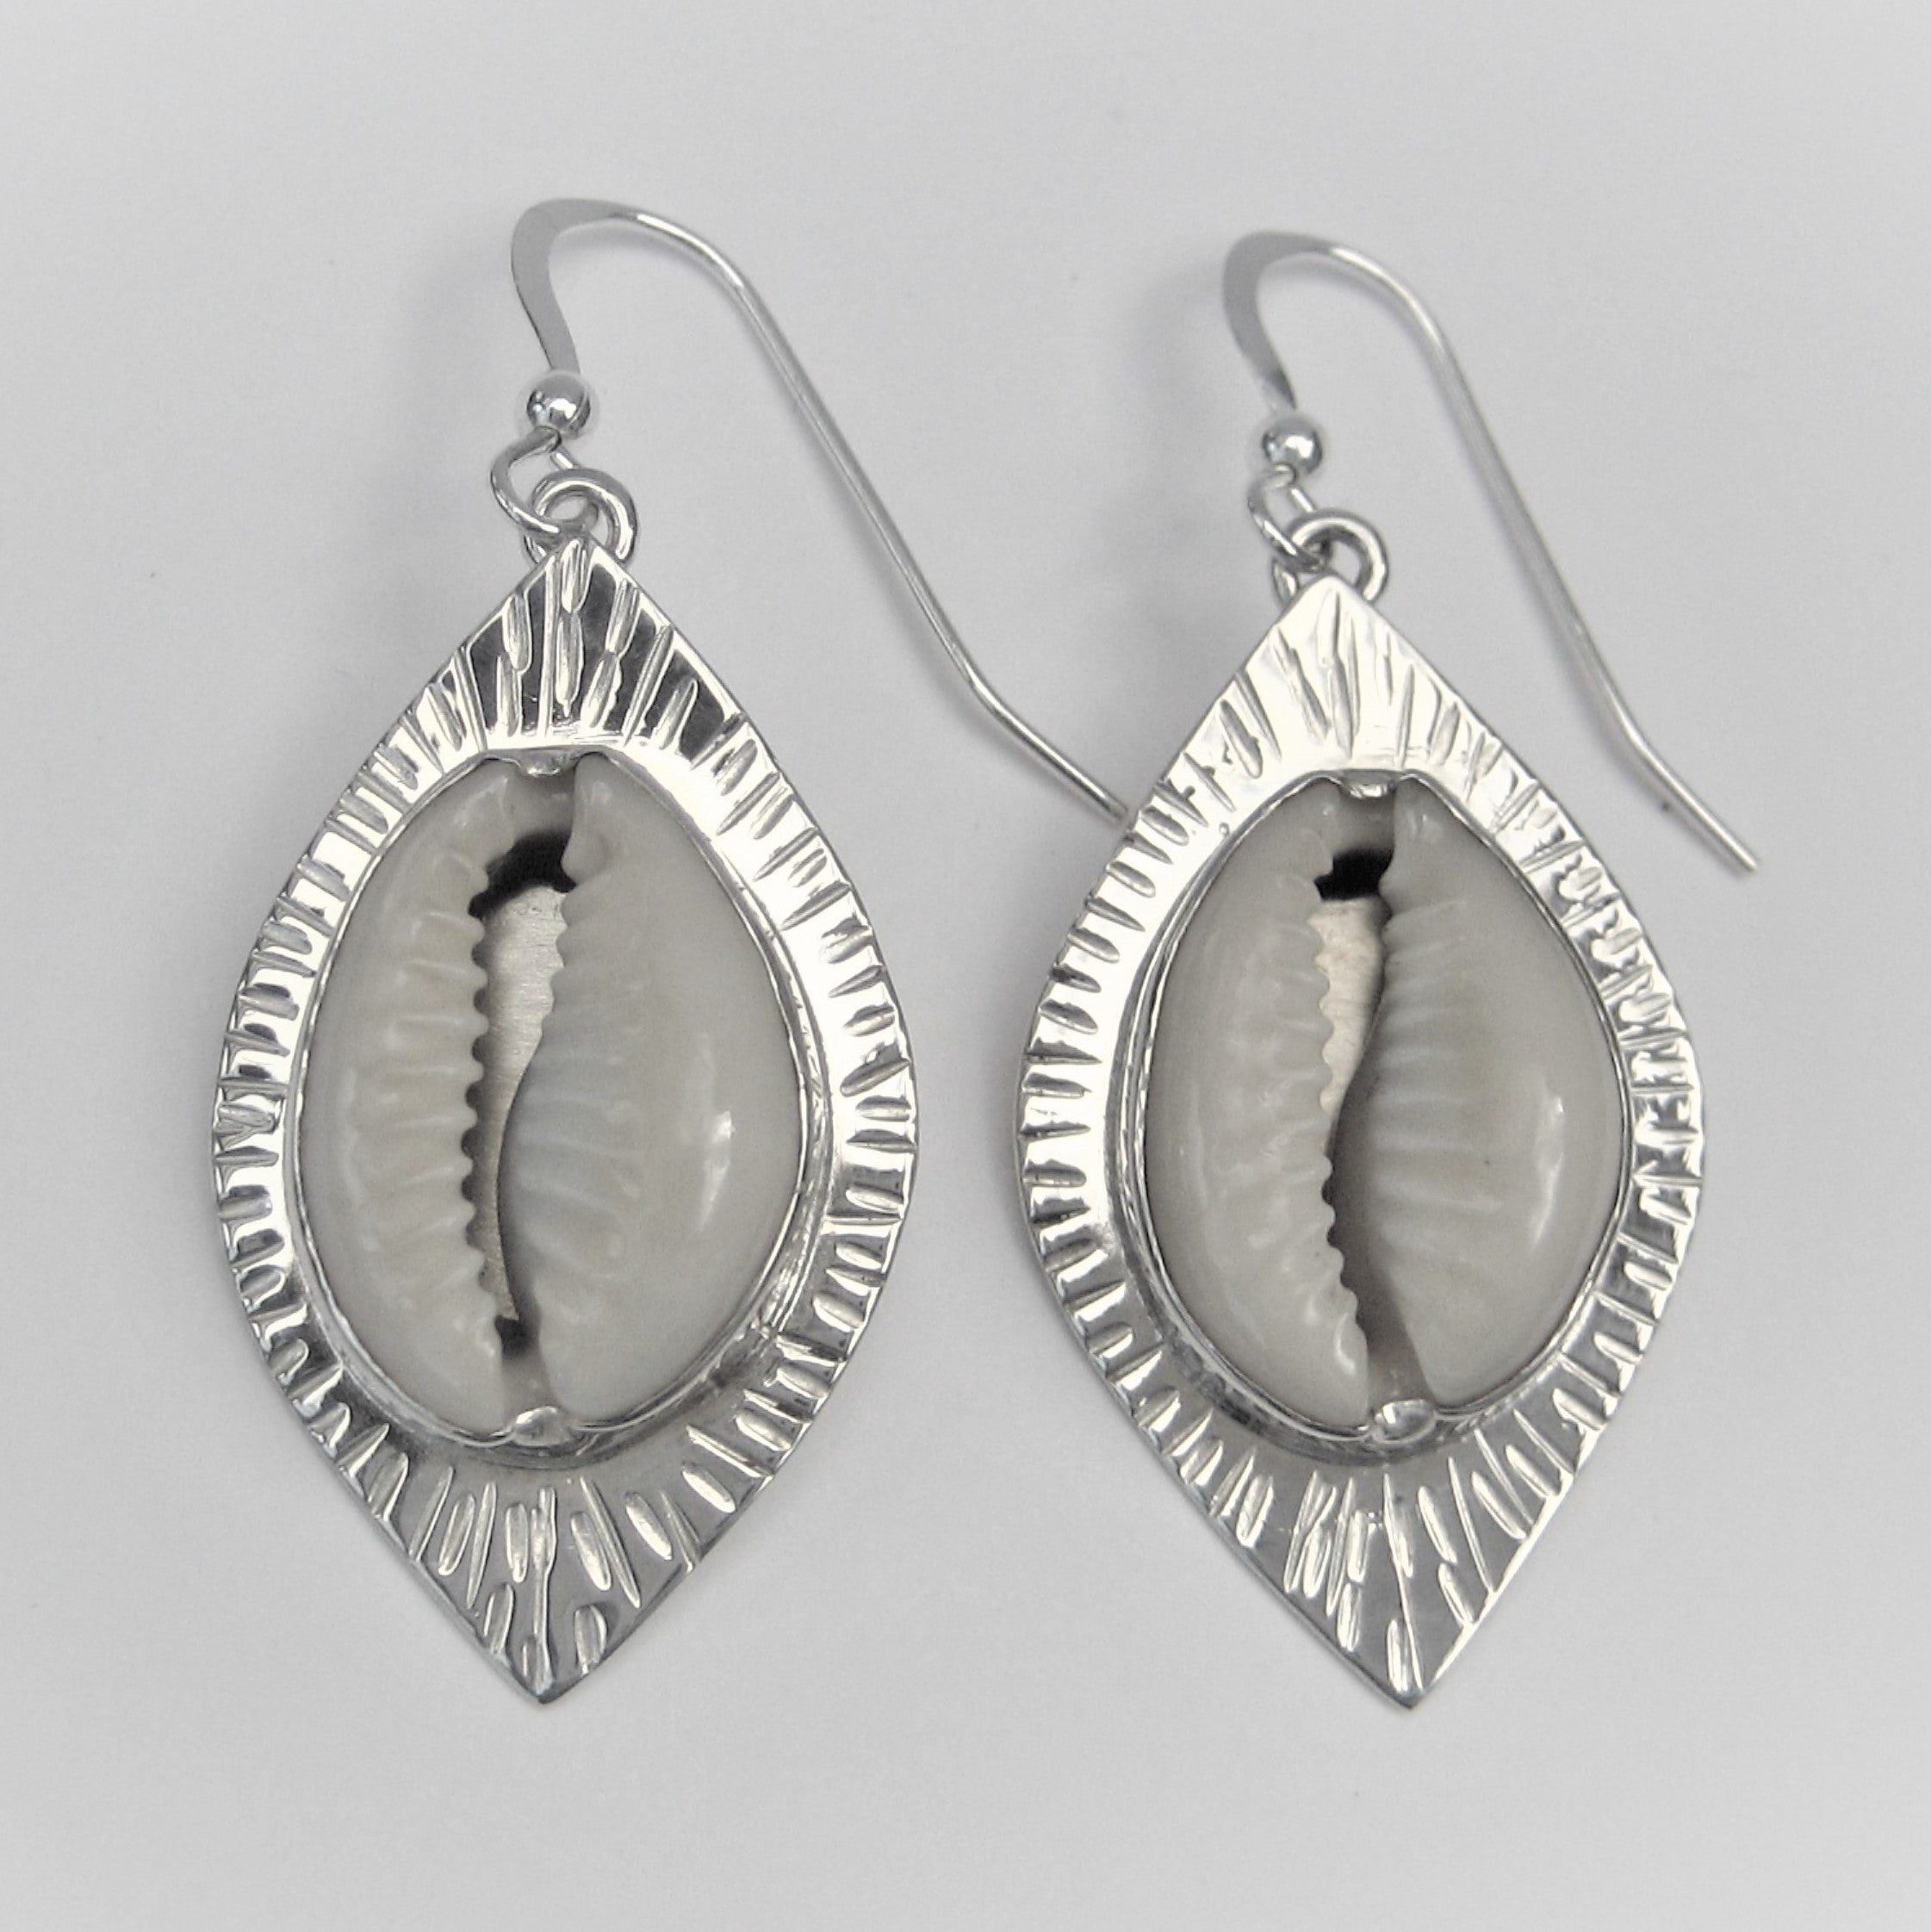 Cowrie with textured edge earrings